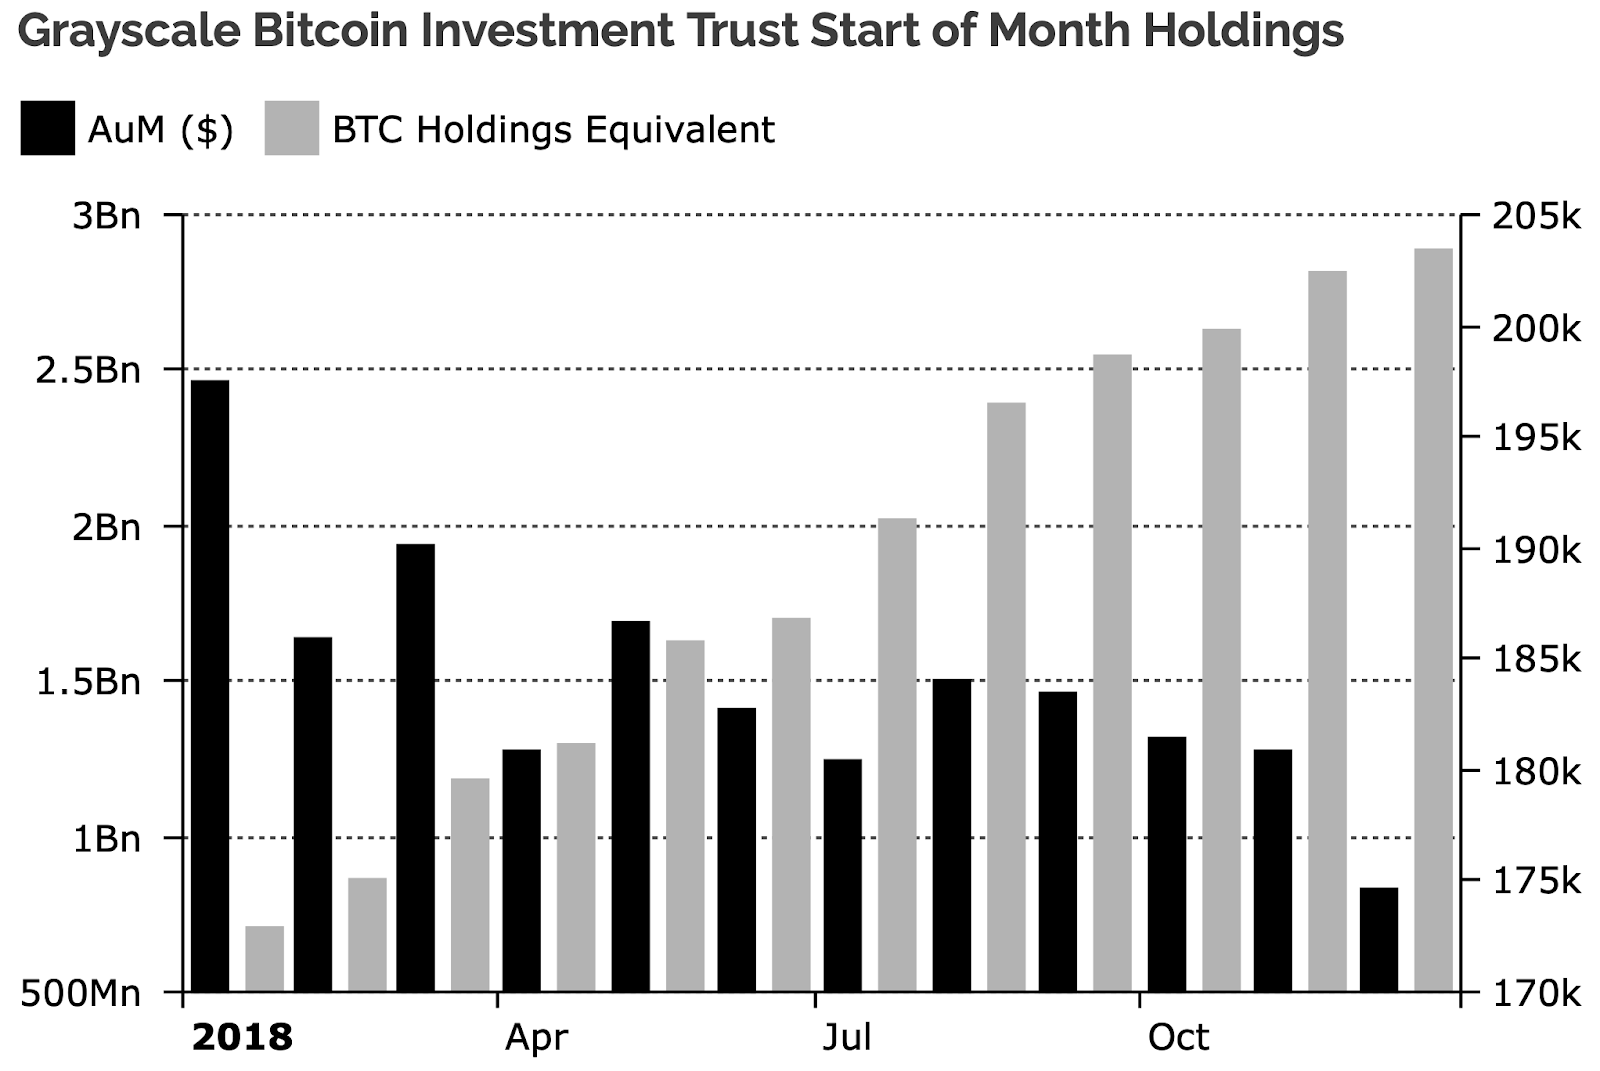 Grayscale Bitcoin Investment Trust Start of Mounth Holdings